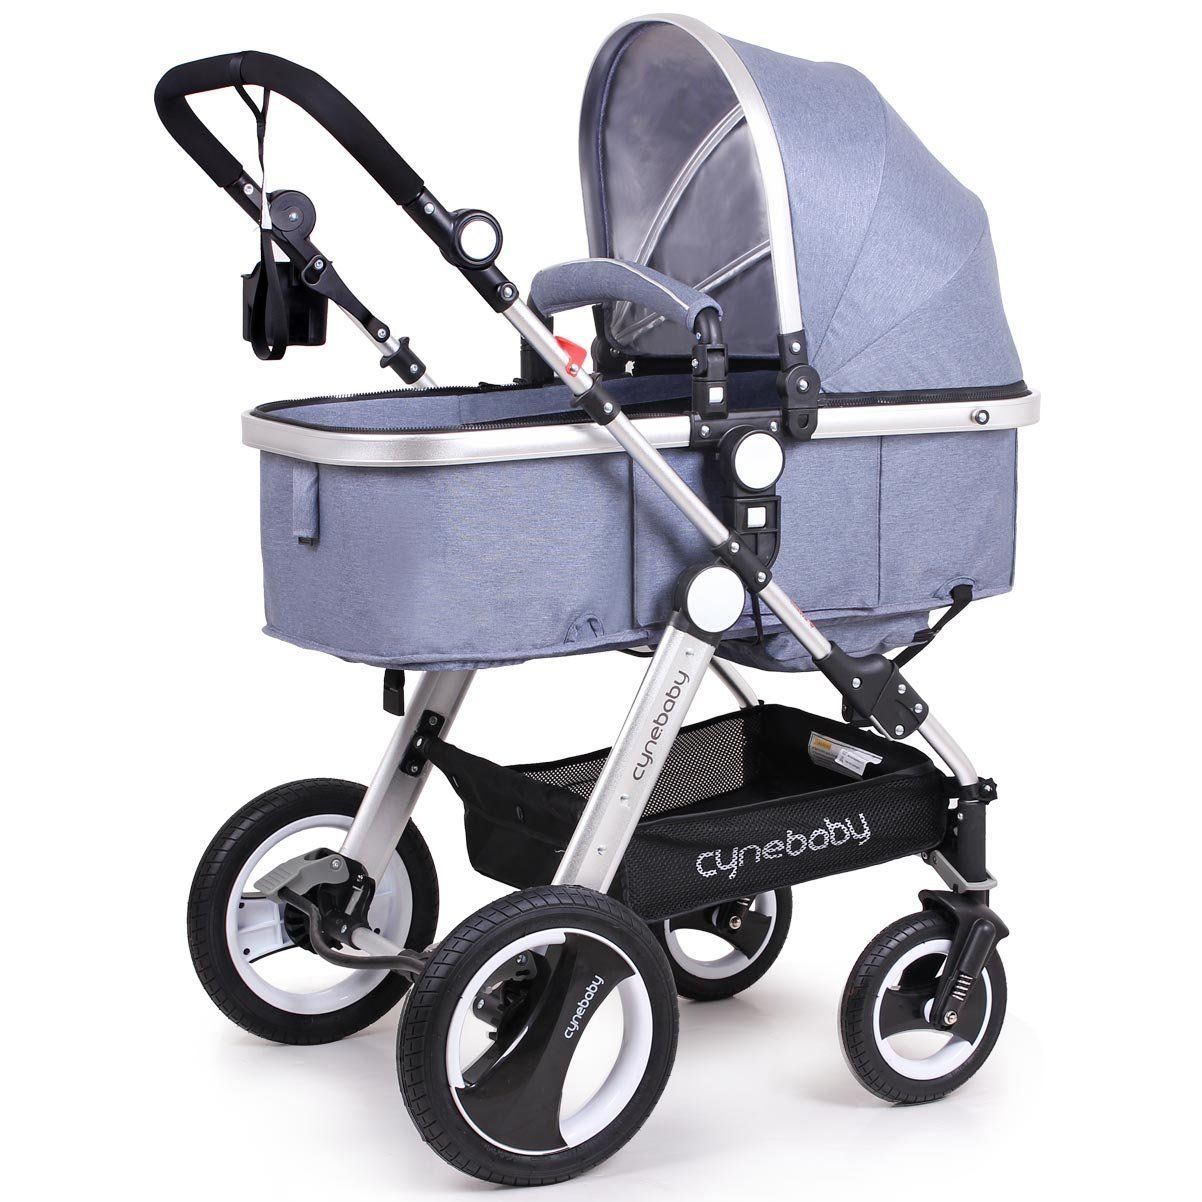 Cynebaby Newborn Baby Stroller for Infant and